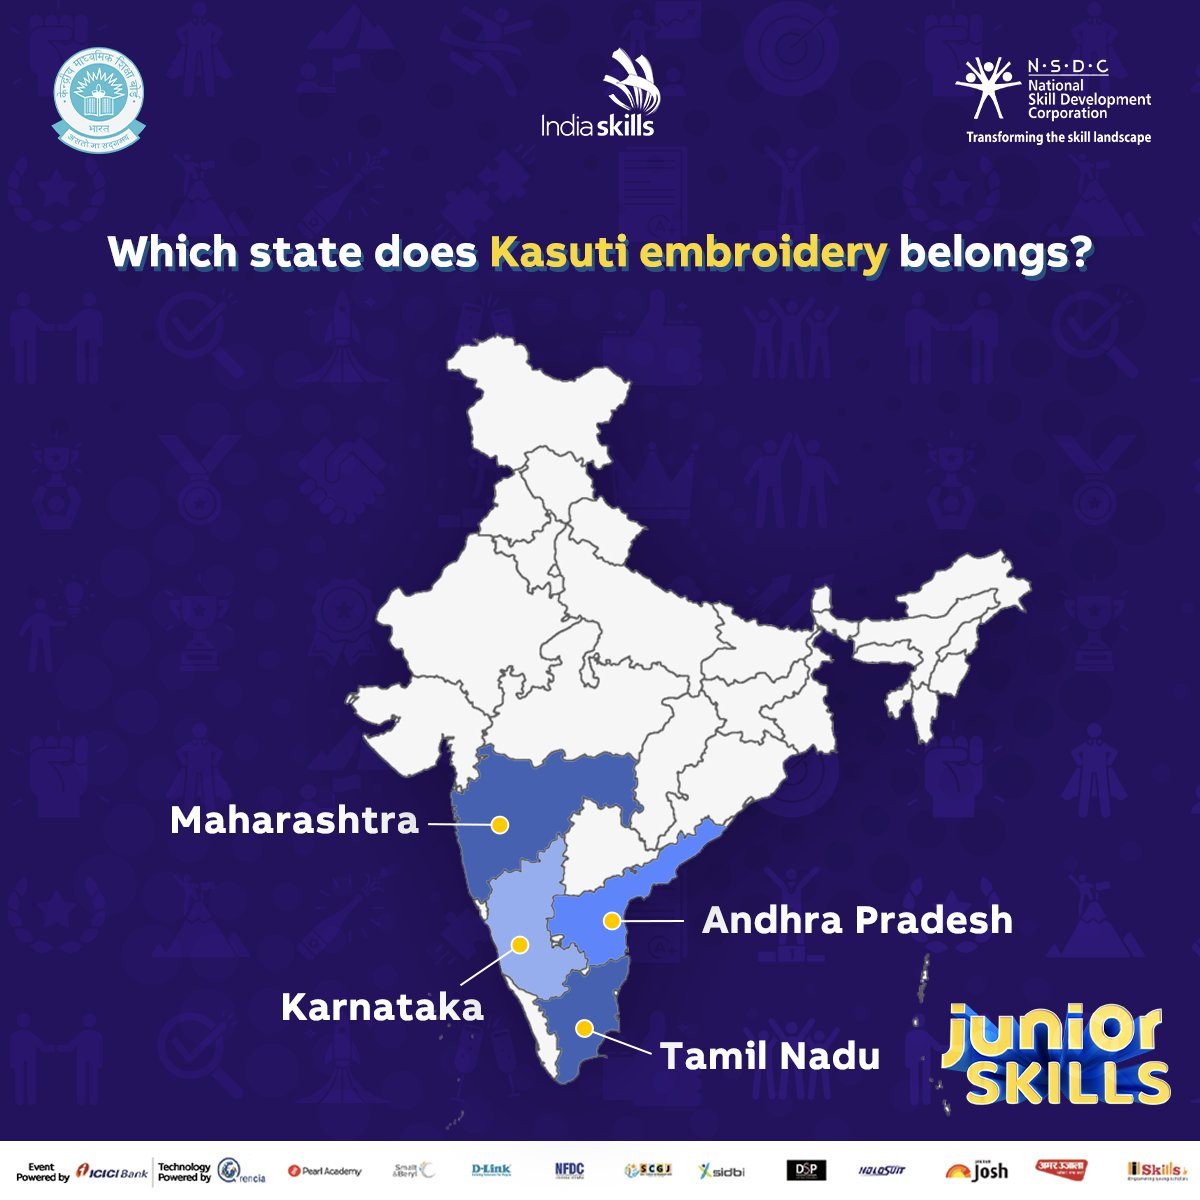 #TRIVIA TIME Do you know what state Kasuti, a traditional form of folk embroidery sometimes involving up to 5,000 stitches by hand, come from? Tell us in the comments below.  Register for the Fashion Tech. competition with #JuniorSkills using this link